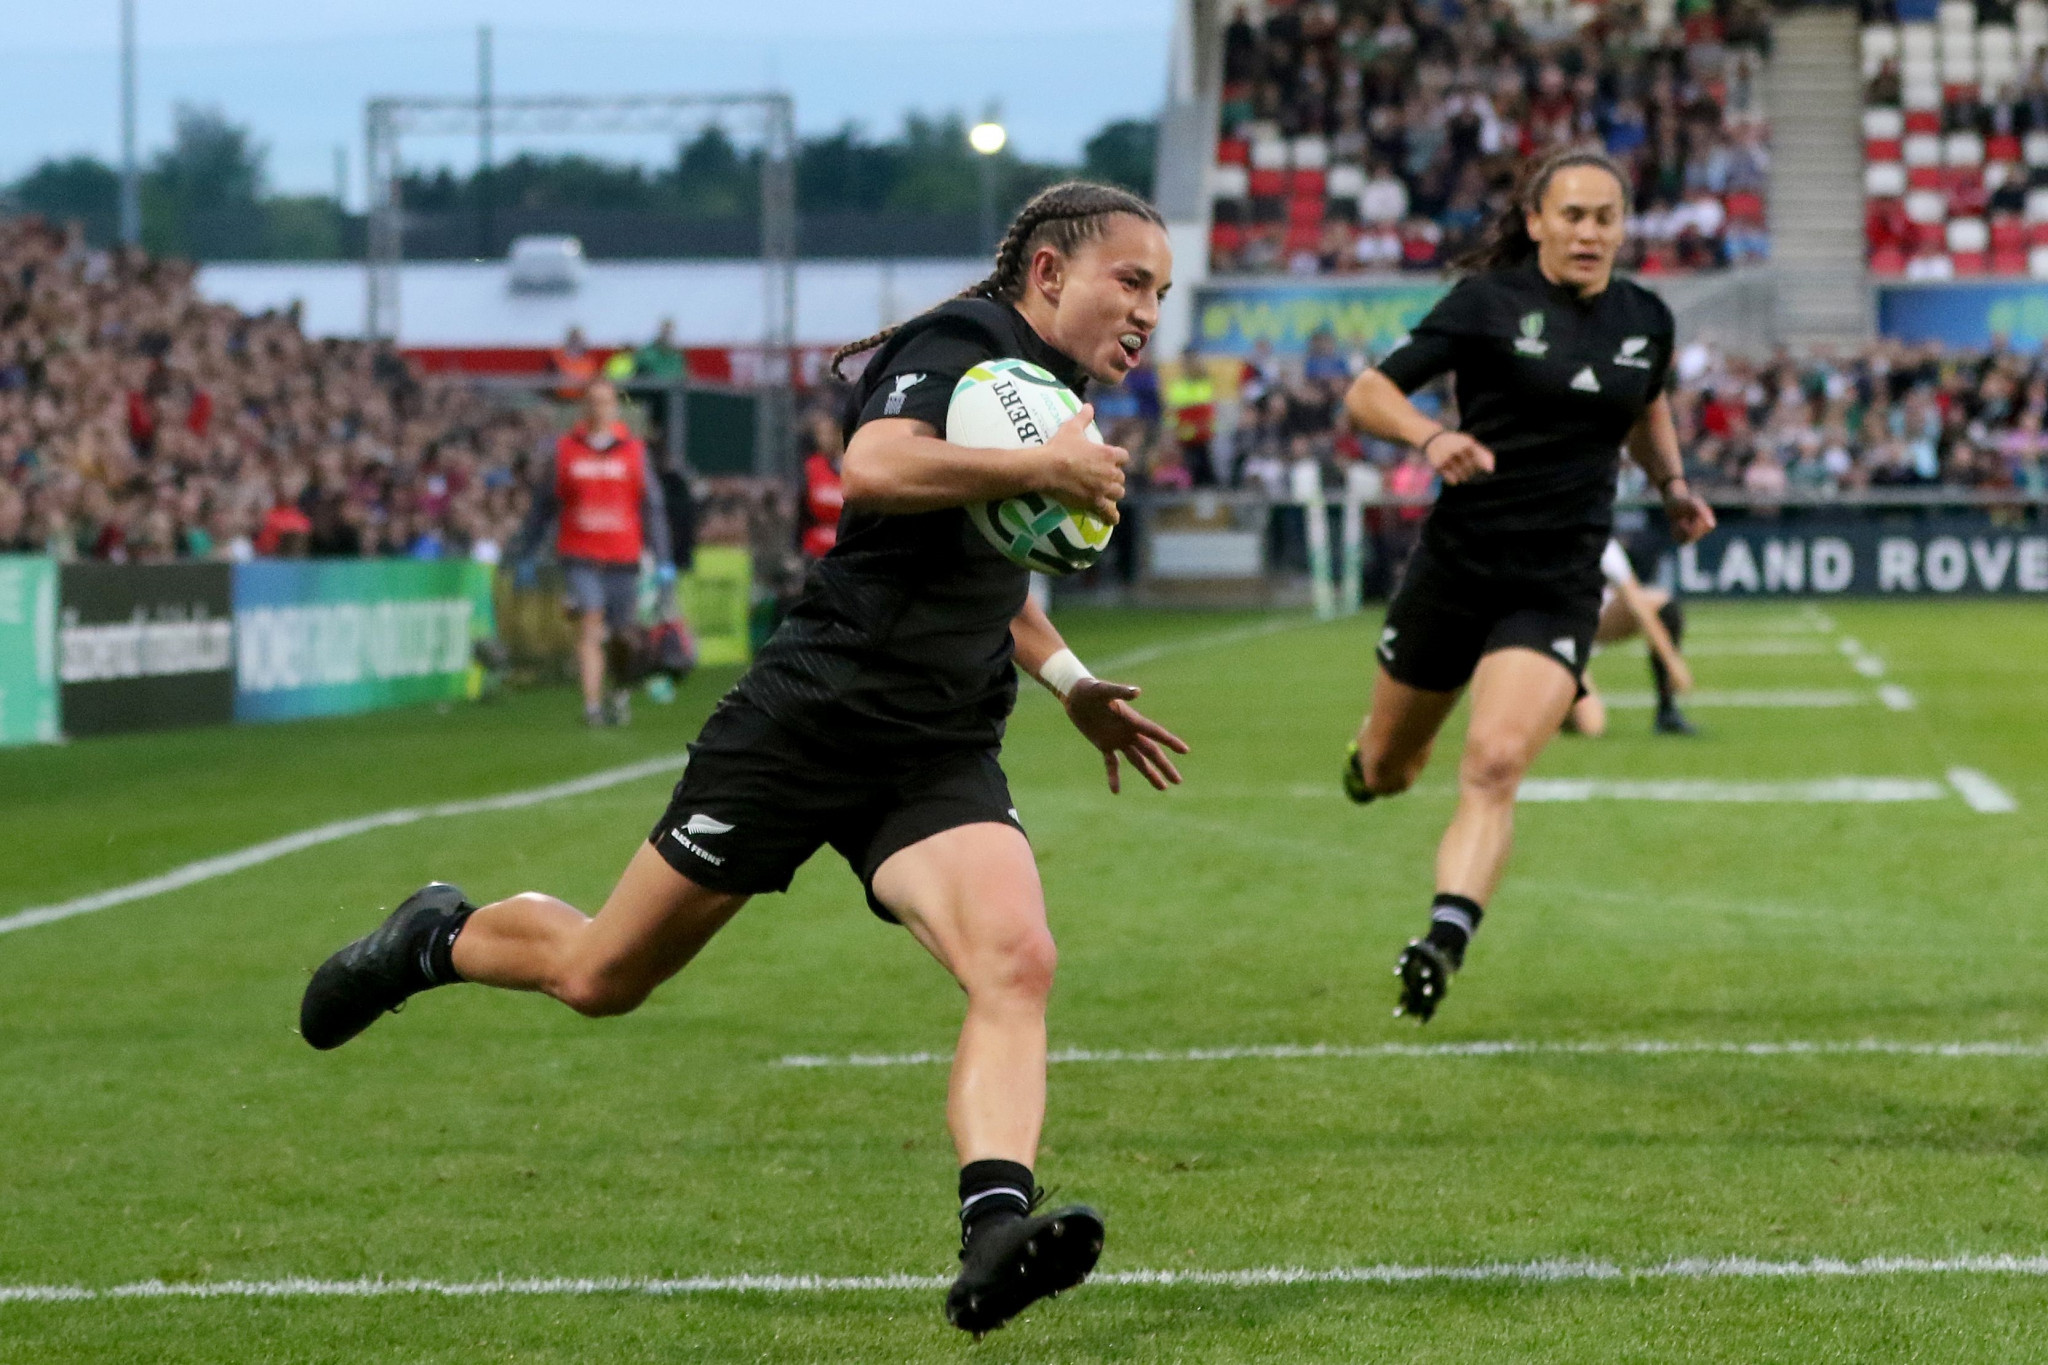 New Zealand won the last edition of the Women's Rugby World Cup, held in Ireland in 2017 ©Getty Images